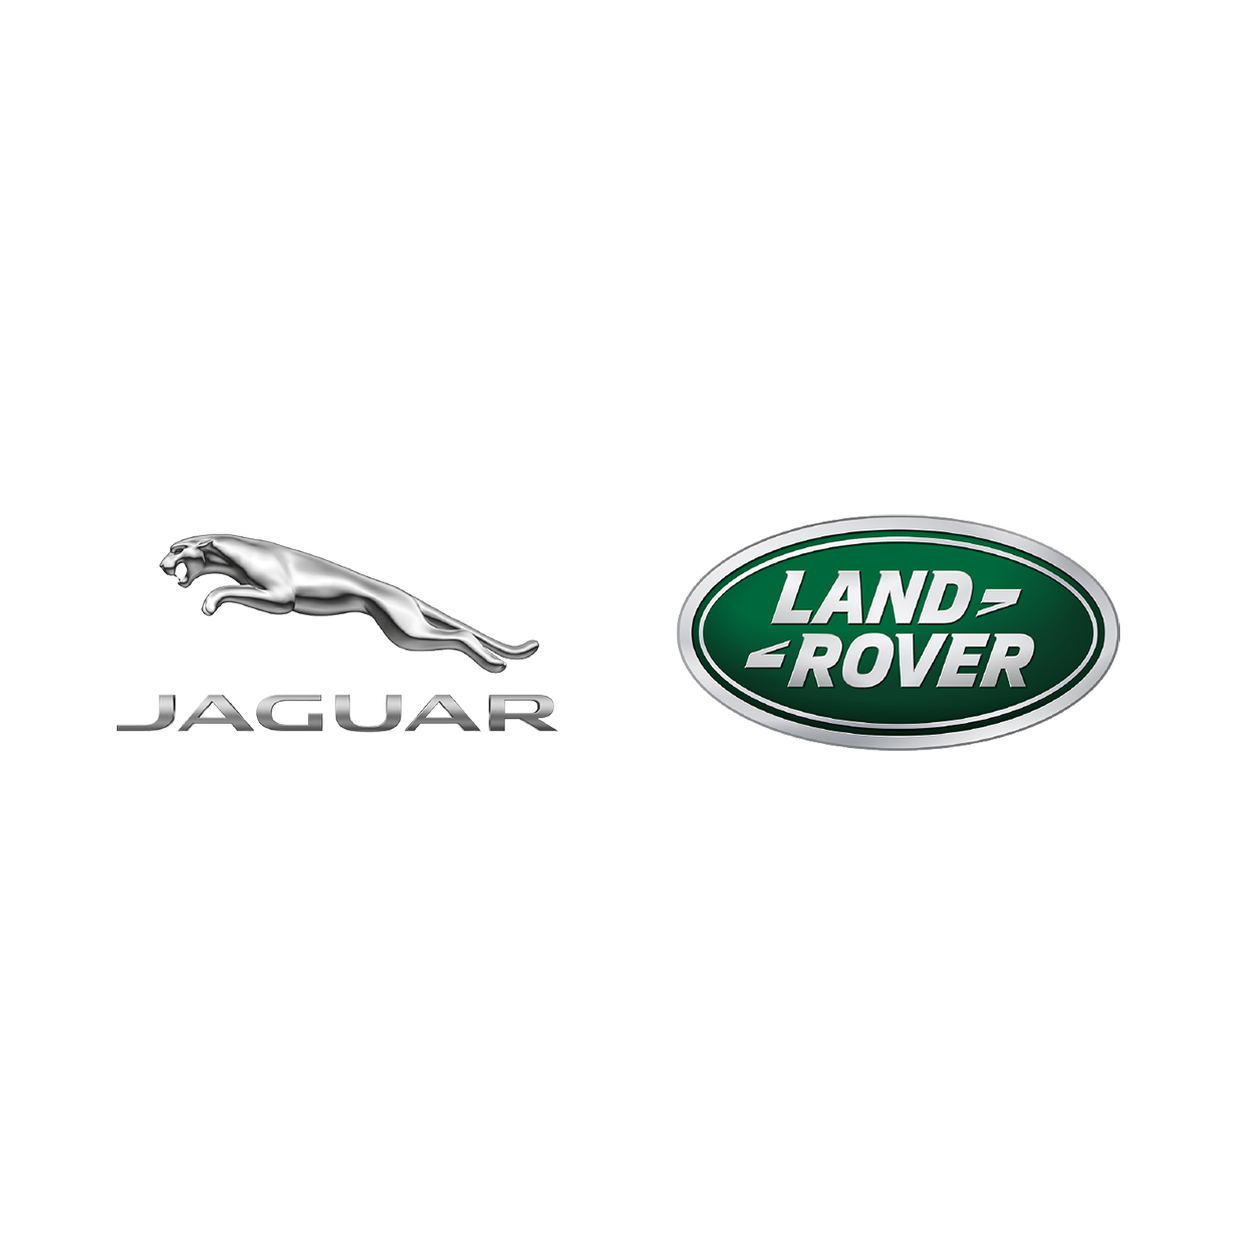 Discover Apprenticeship Employer Jaguar Land Rover